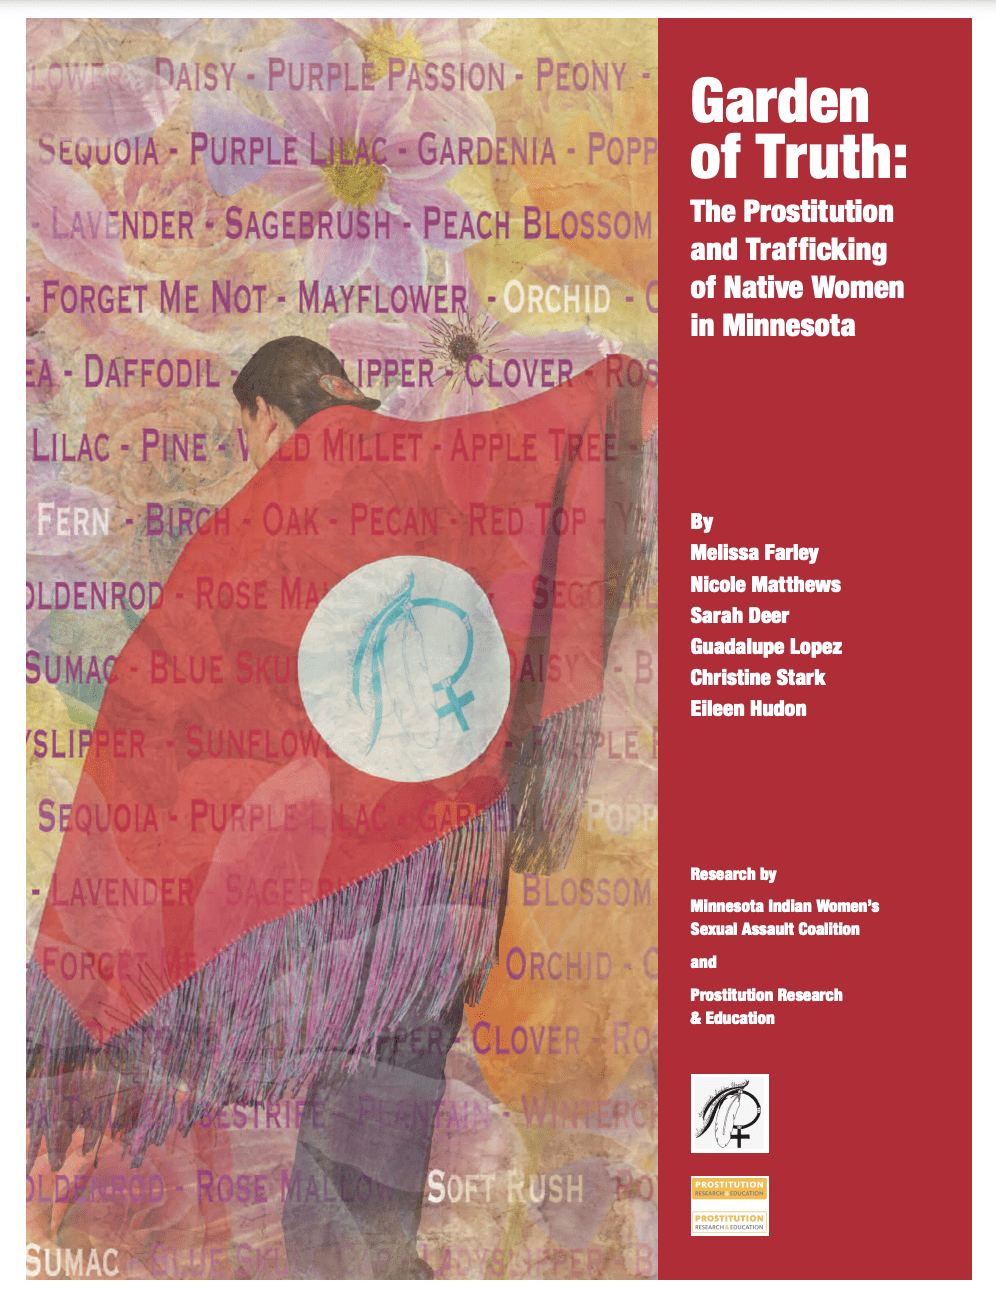 Garden of Truth: Prostitution and Trafficking of Native Women in Minnesota